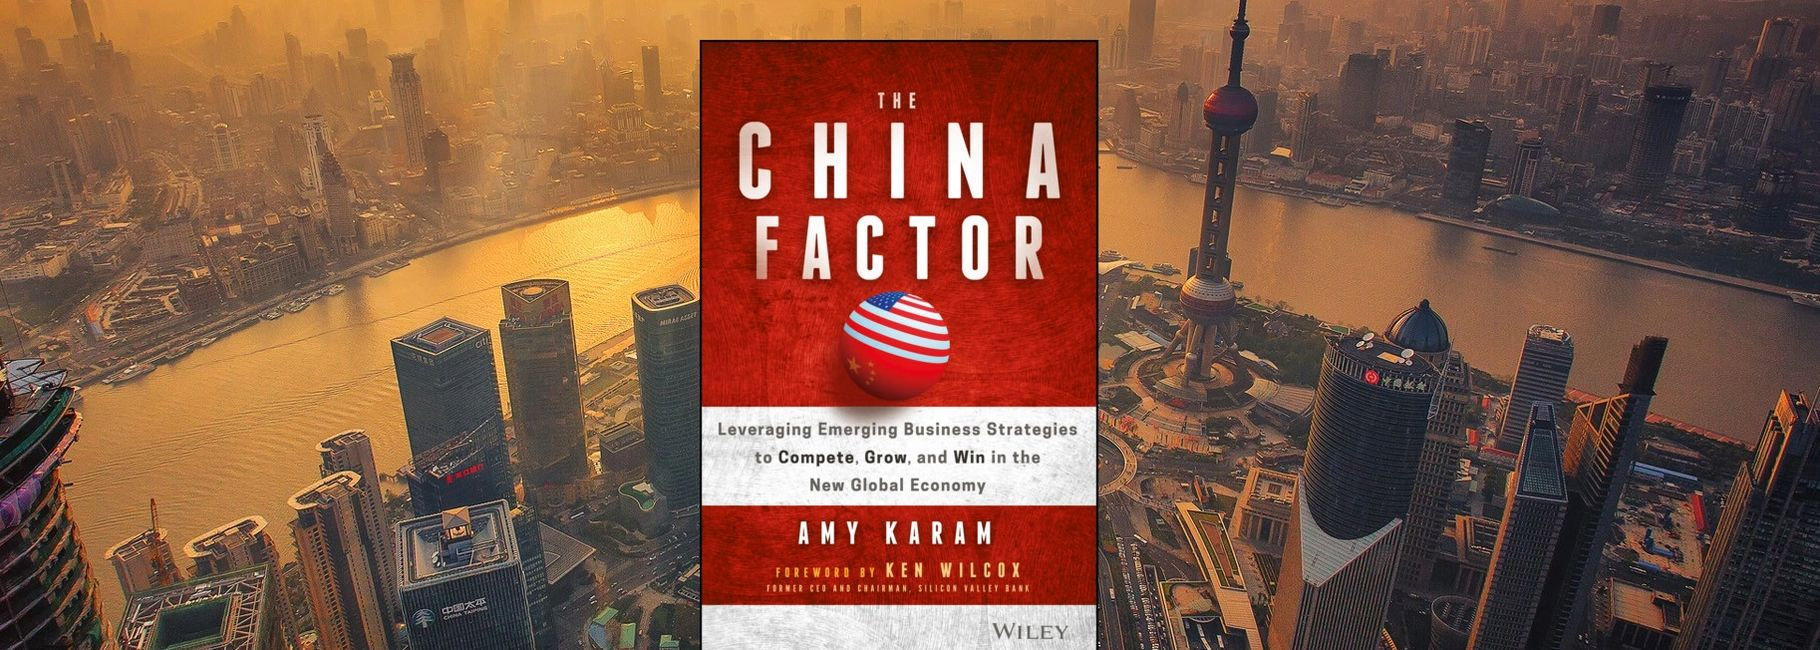 BUY THE CHINA FACTOR ON AMAZON